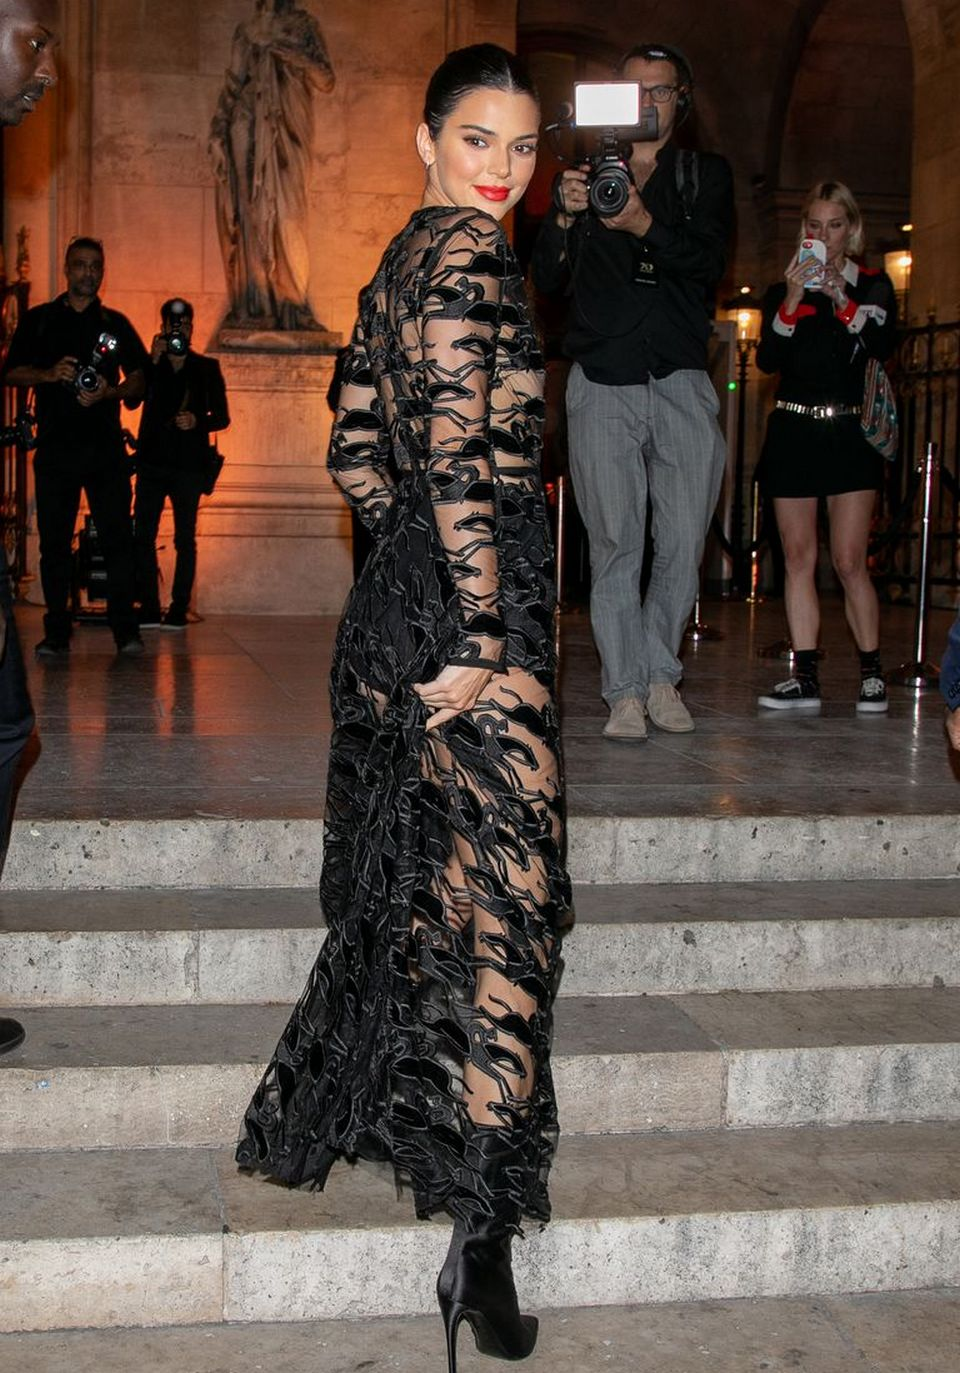 Kendall Jenner looked stunning in a black sheer dress in Paris when she arrived to attend the Longchamp 70th anniversary party at Opera Garnier.